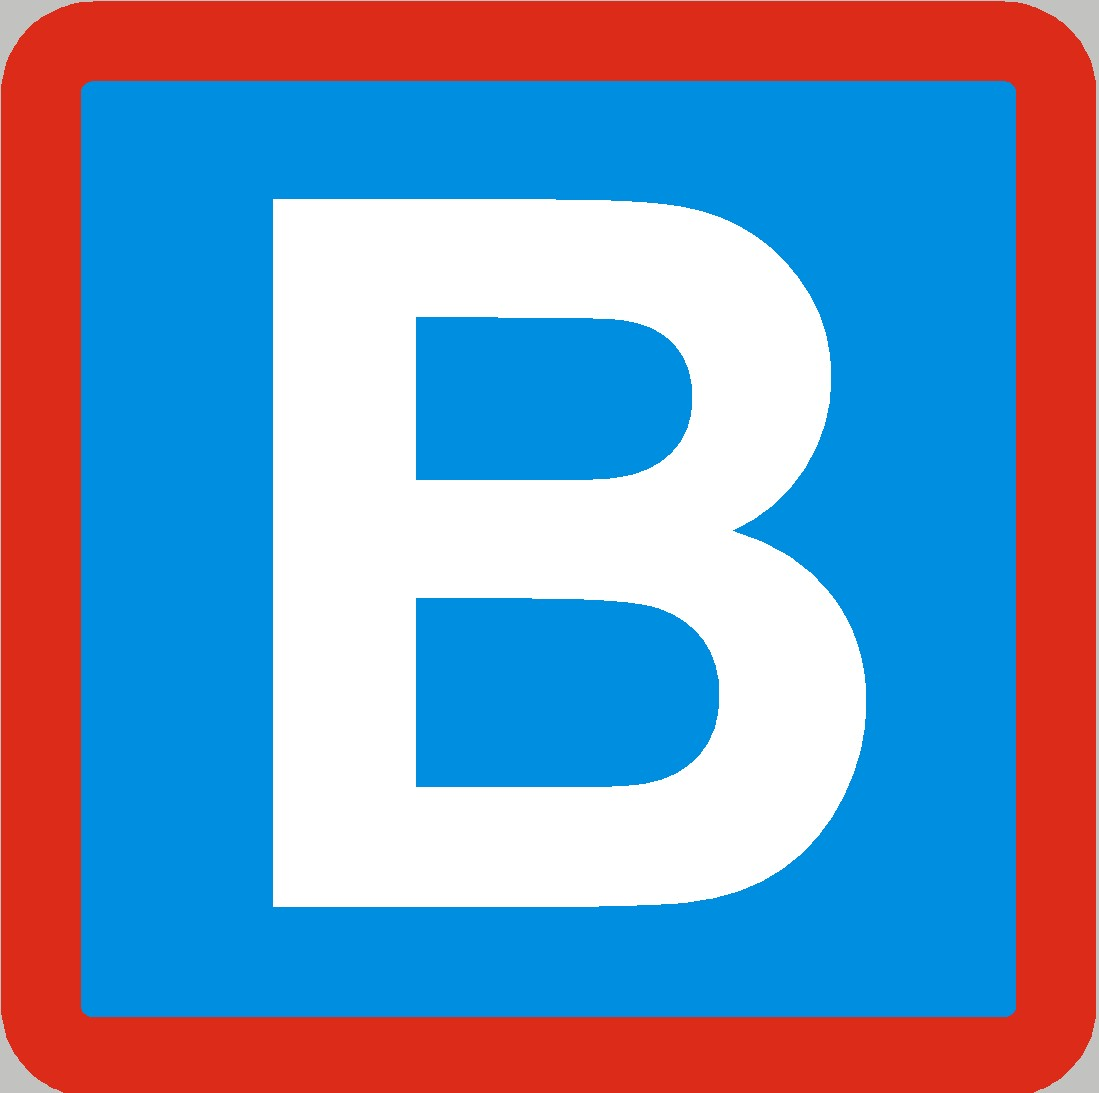 The Letter B - ClipArt Best